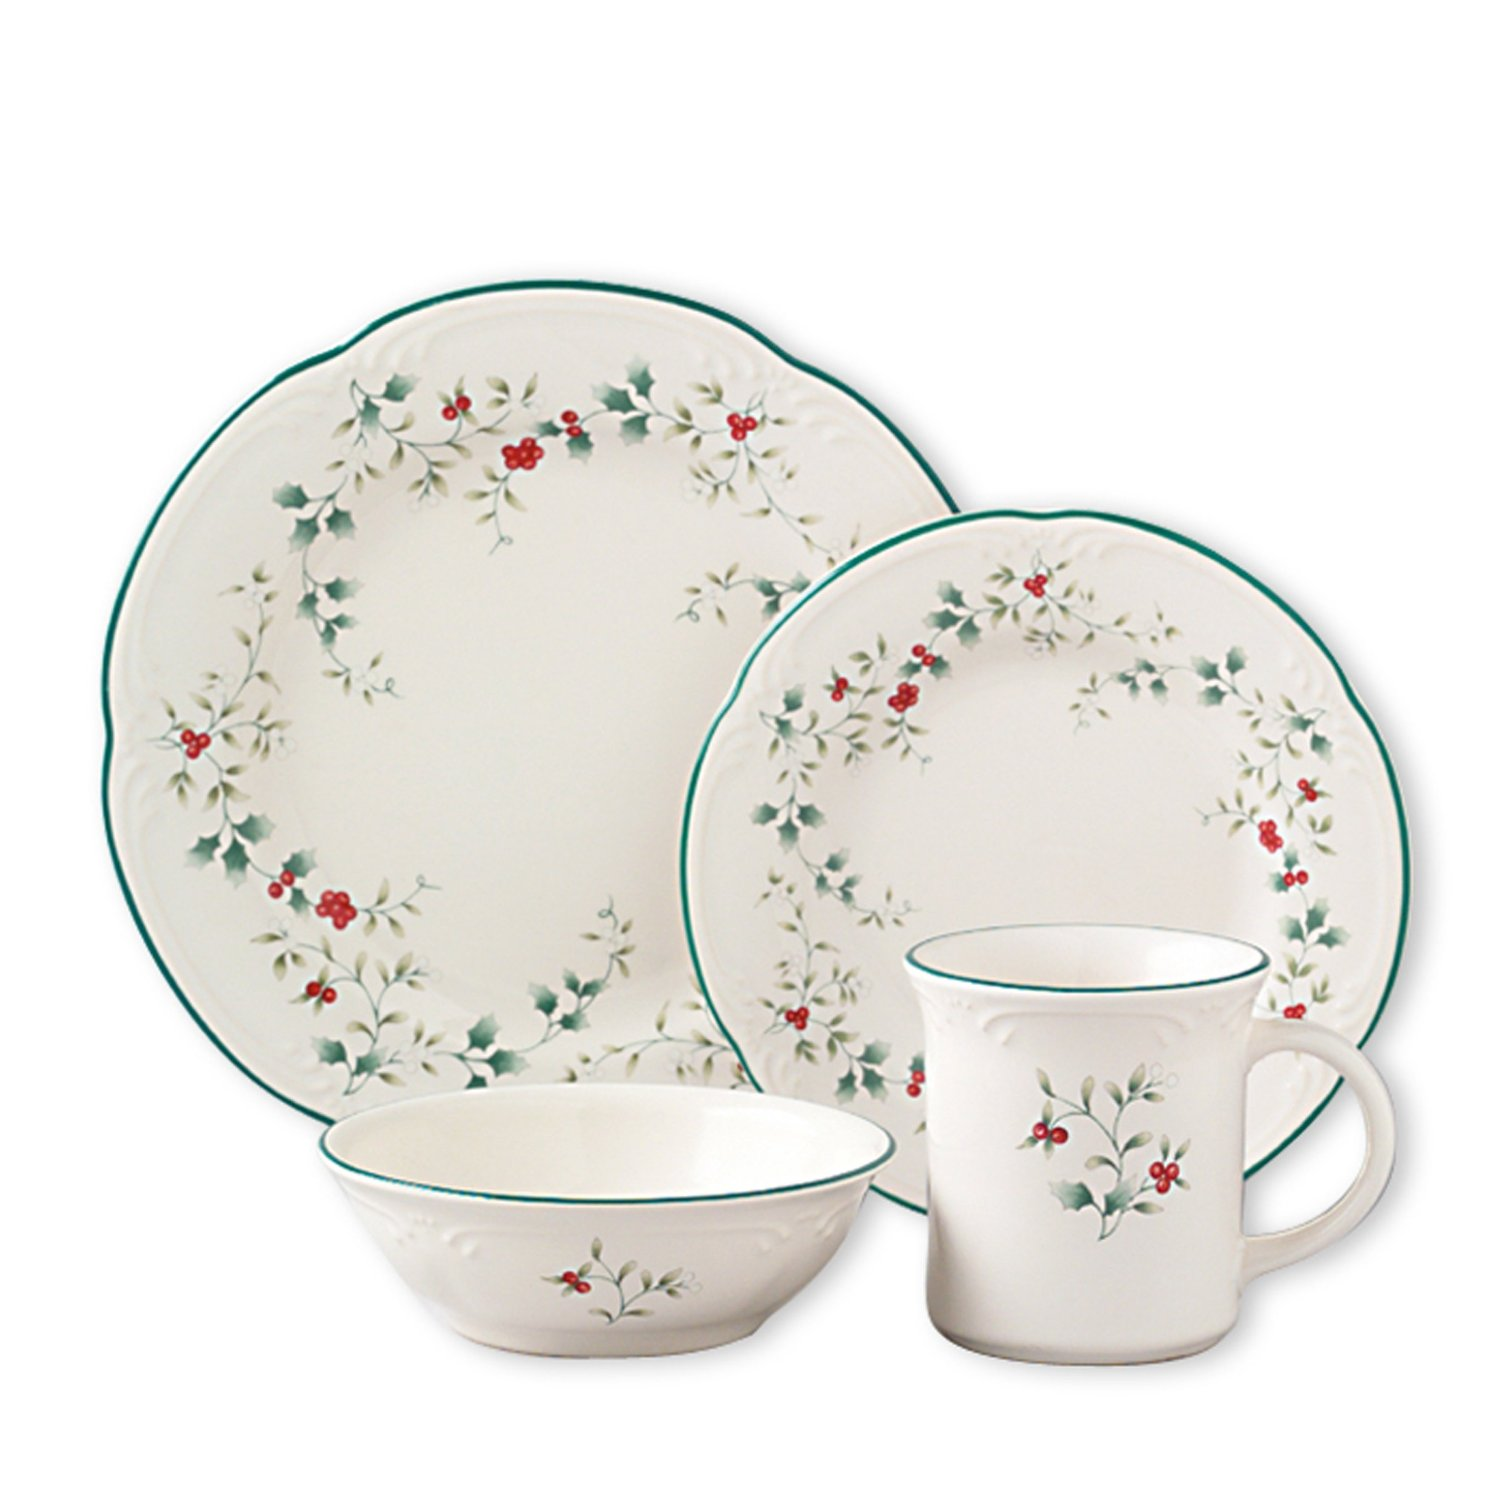 sc 1 st  TopProducts.com & Best Winter Dinnerware Set Reviews of 2018 at TopProducts.com